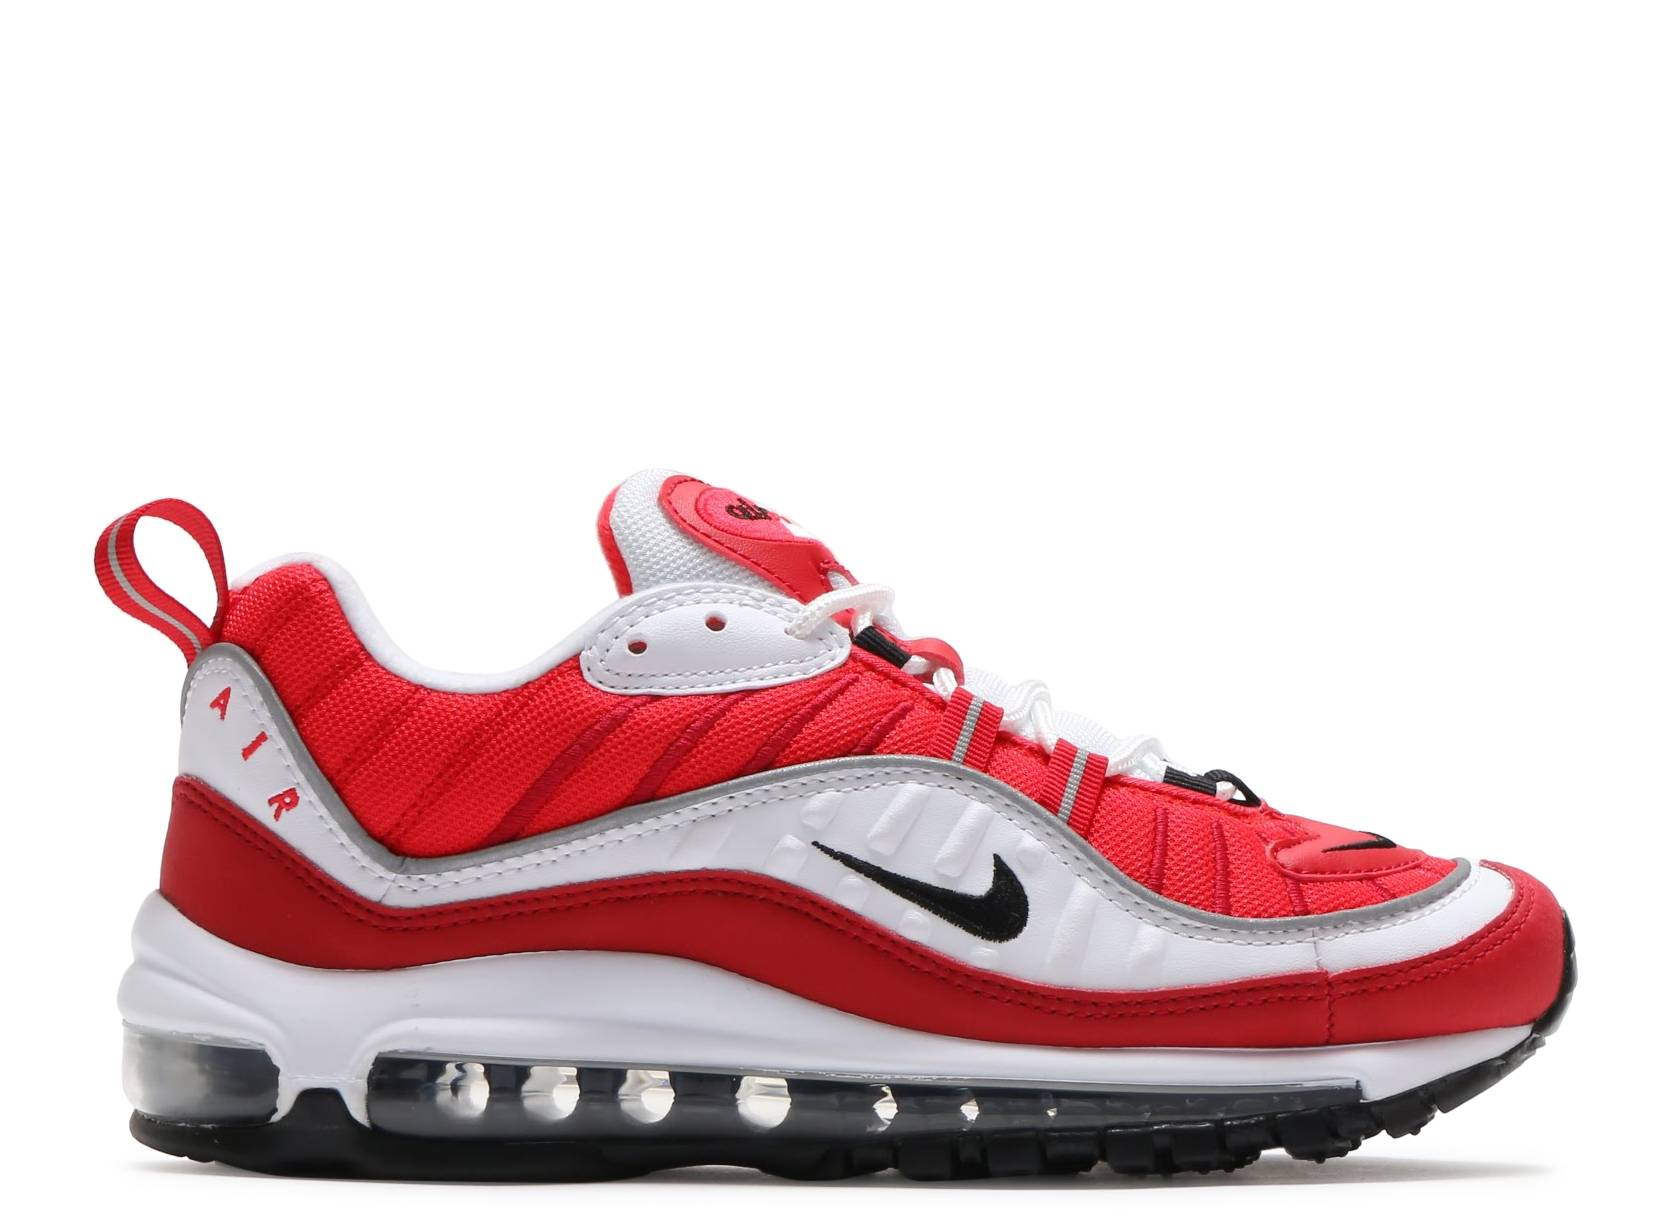 Nike Air Max 98 Gym Red